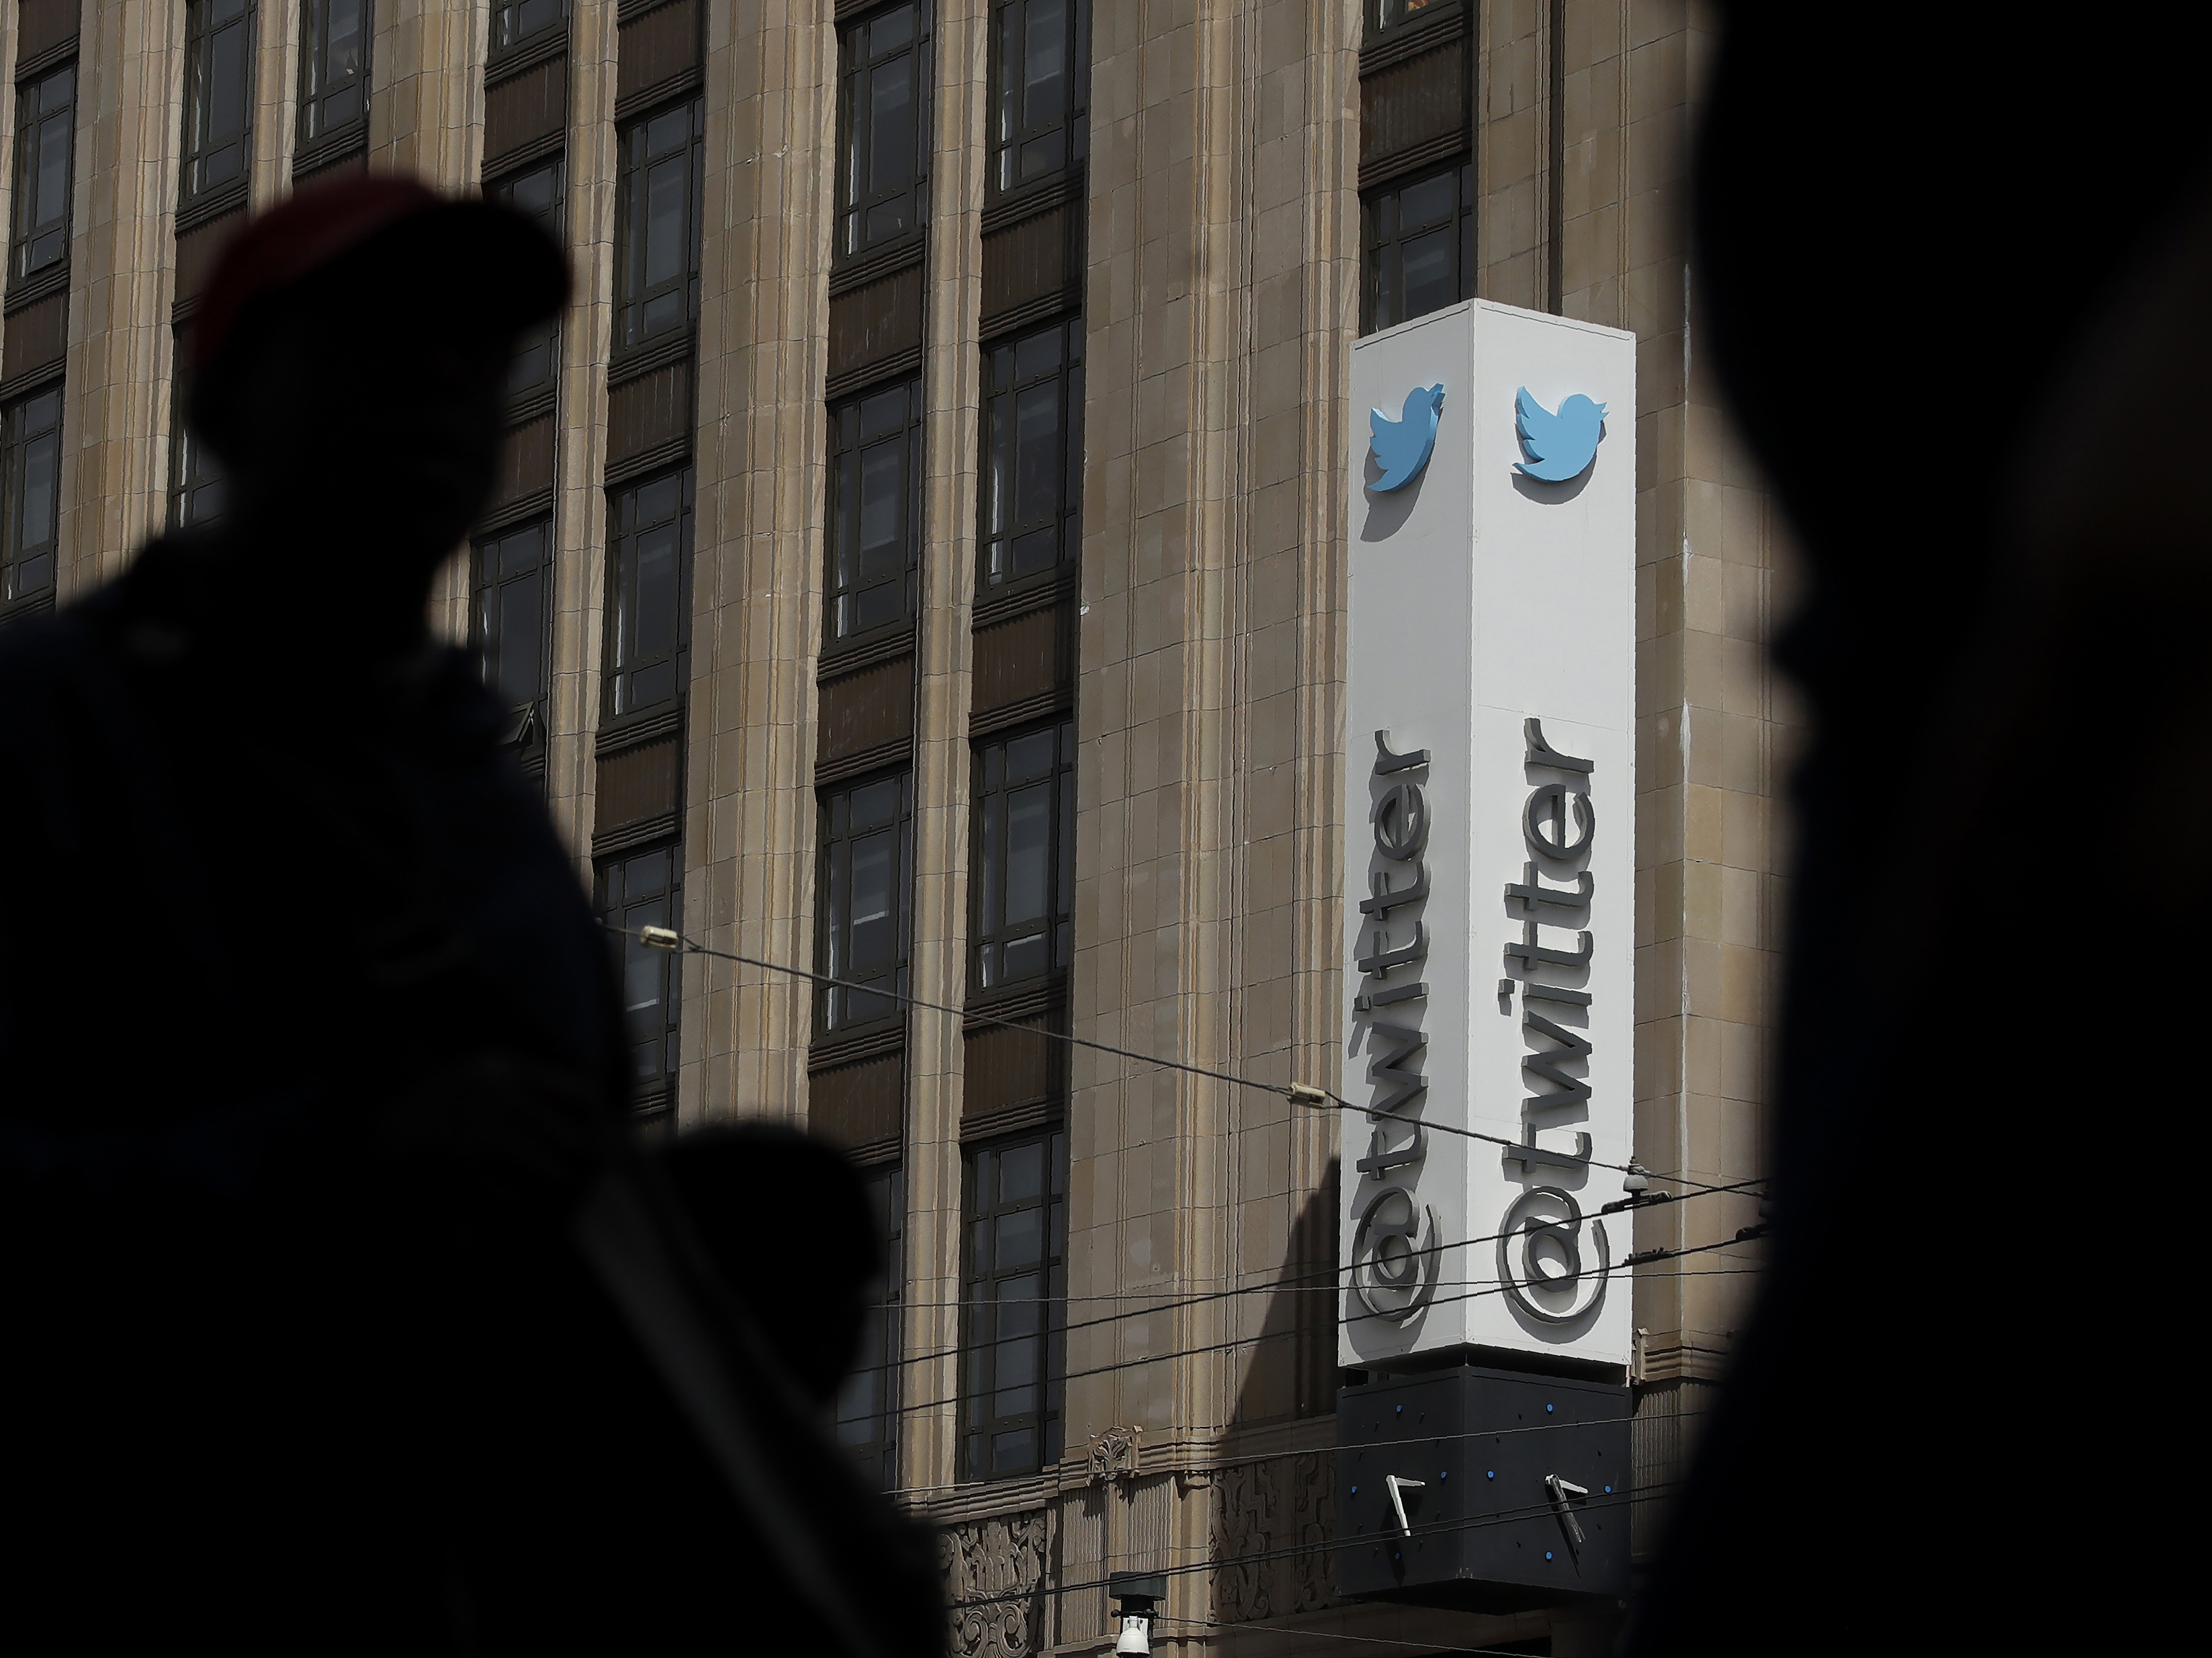 Twitter Vows That As Disinformation Tactics Change, Its Policies Will Keep Pace